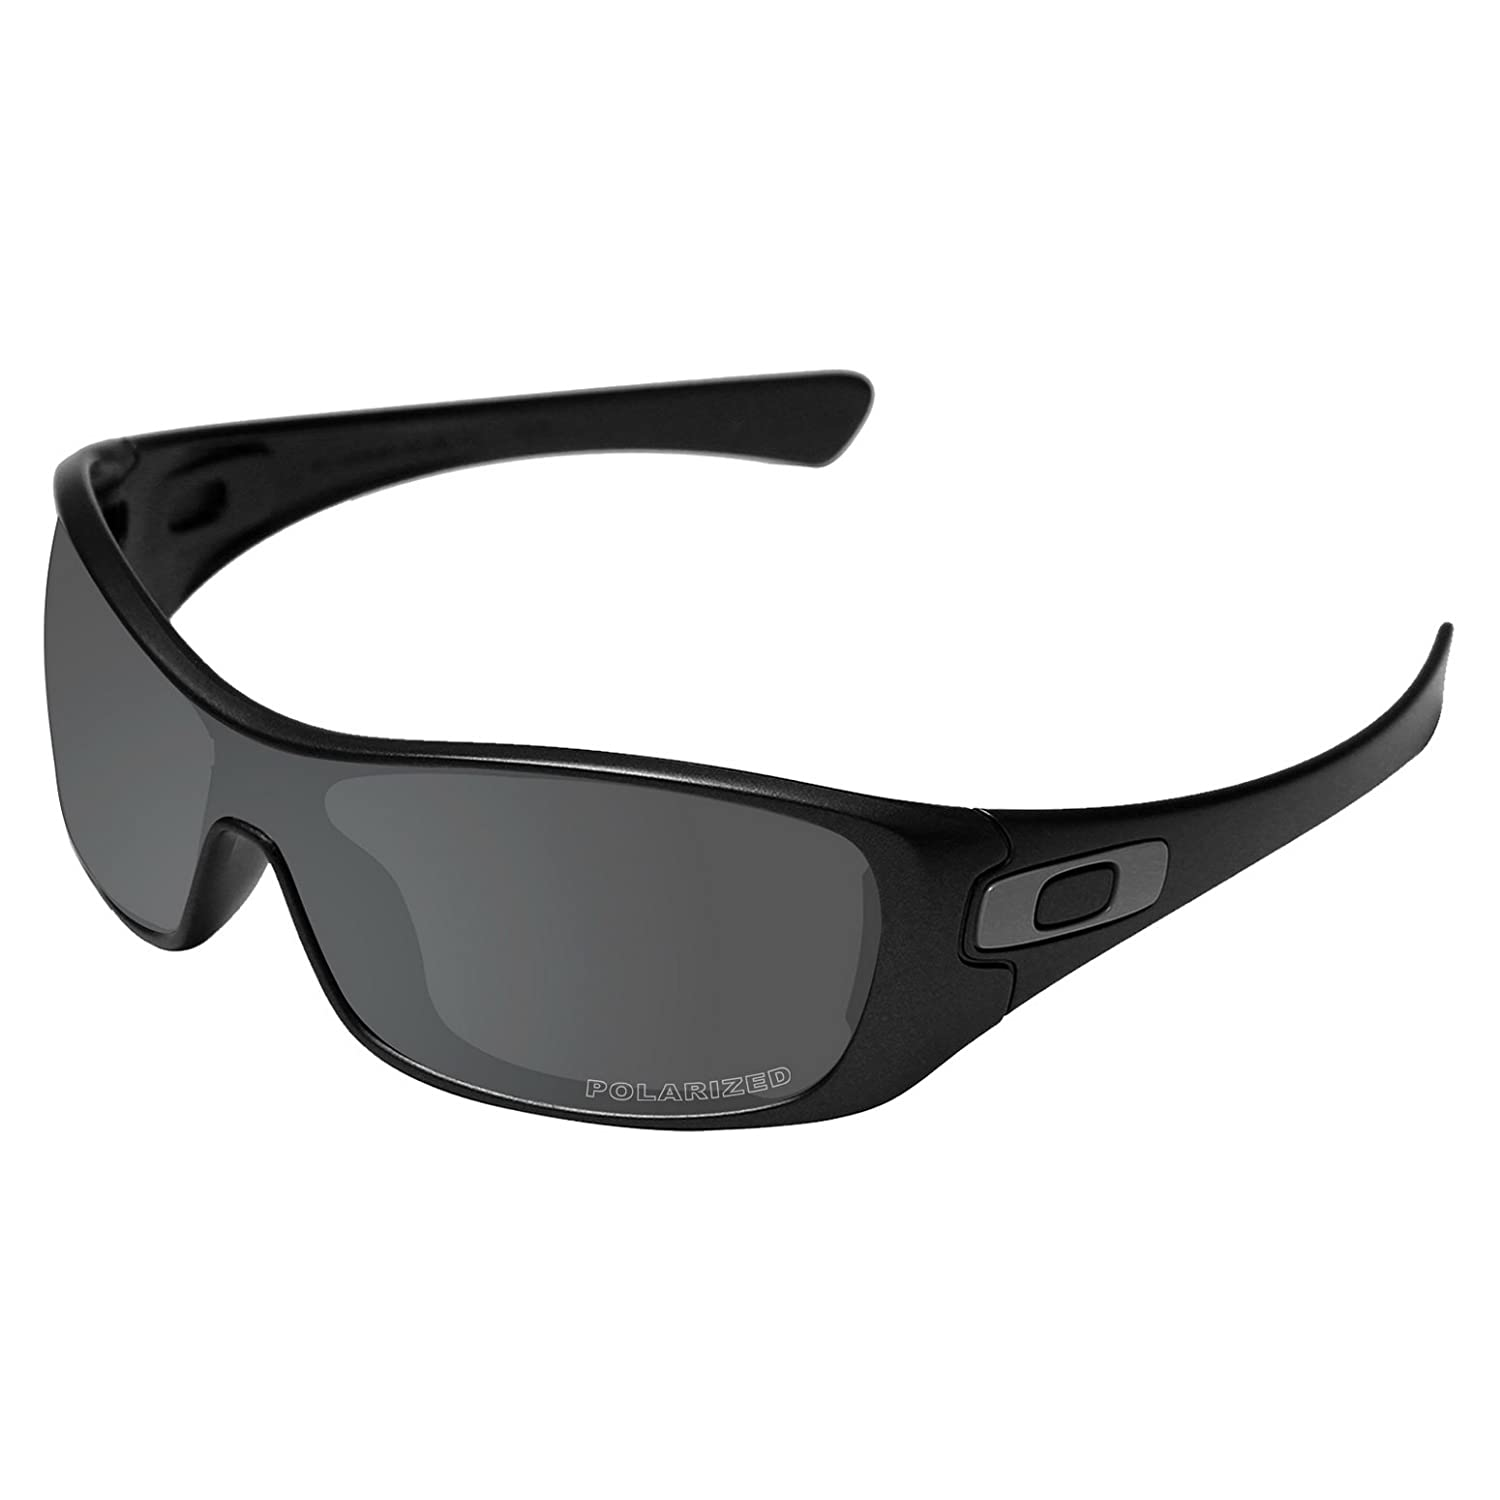 3f844c697fd Amazon.com  Tintart Performance Lenses Compatible with Oakley Antix Polarized  Etched-Carbon Black  Clothing